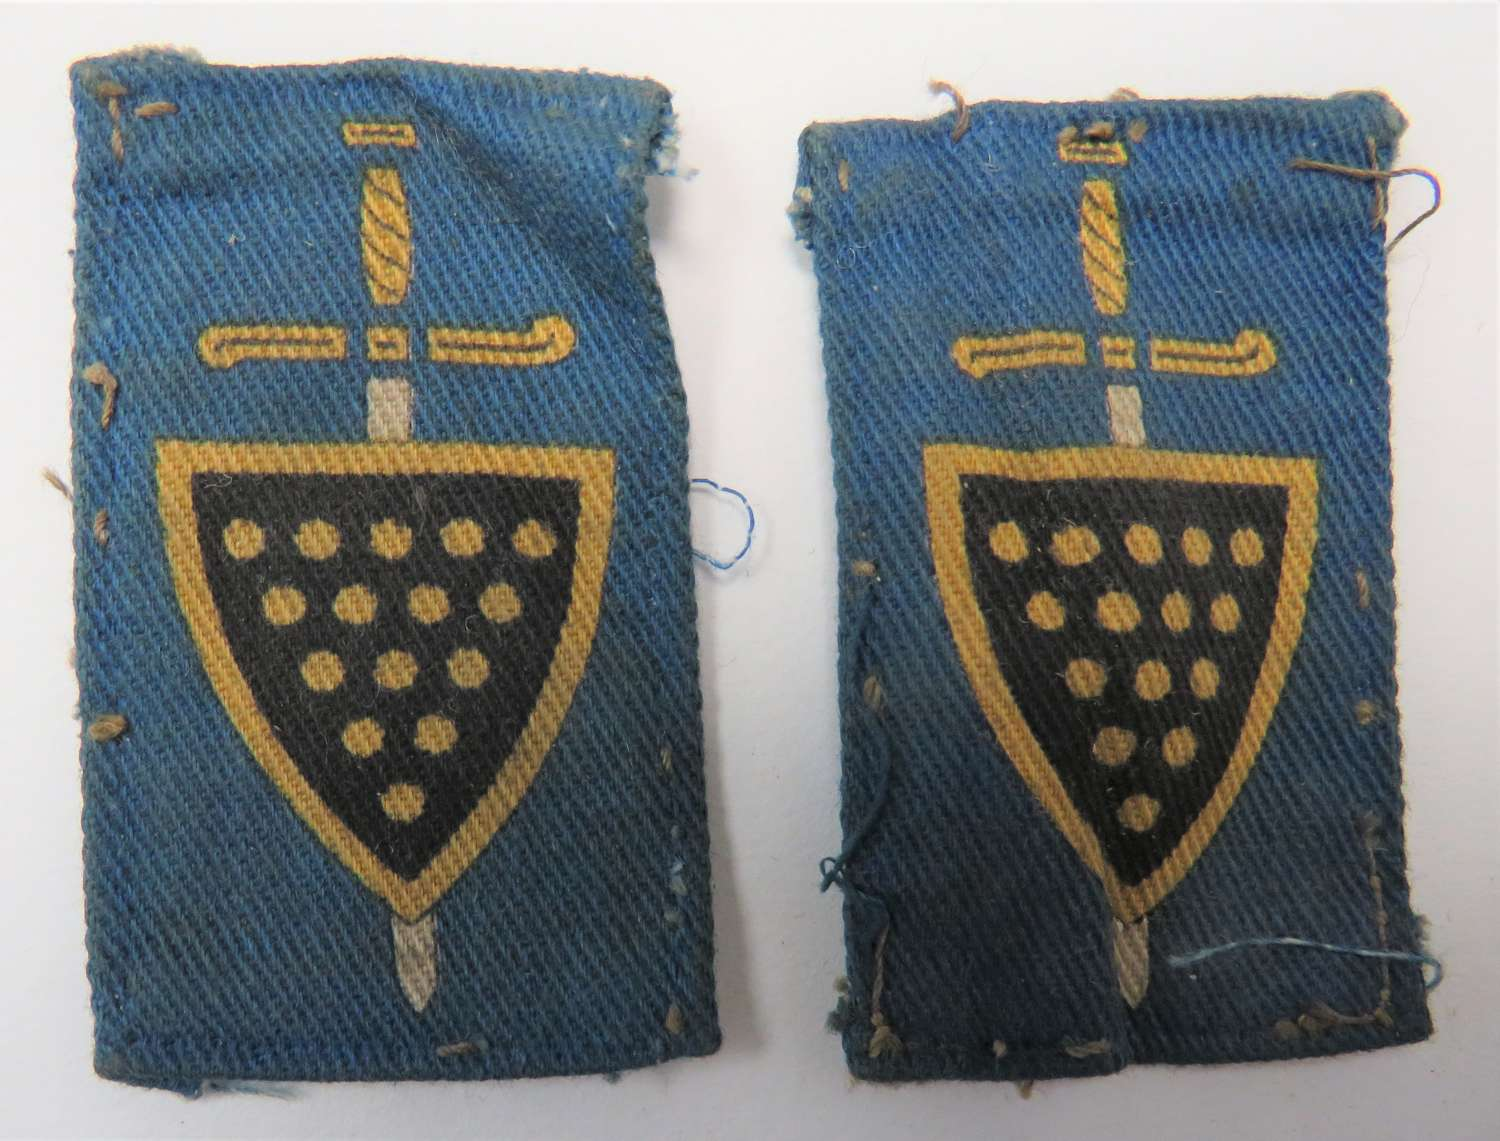 Pair of 73rd Independent Infantry Formation Badges